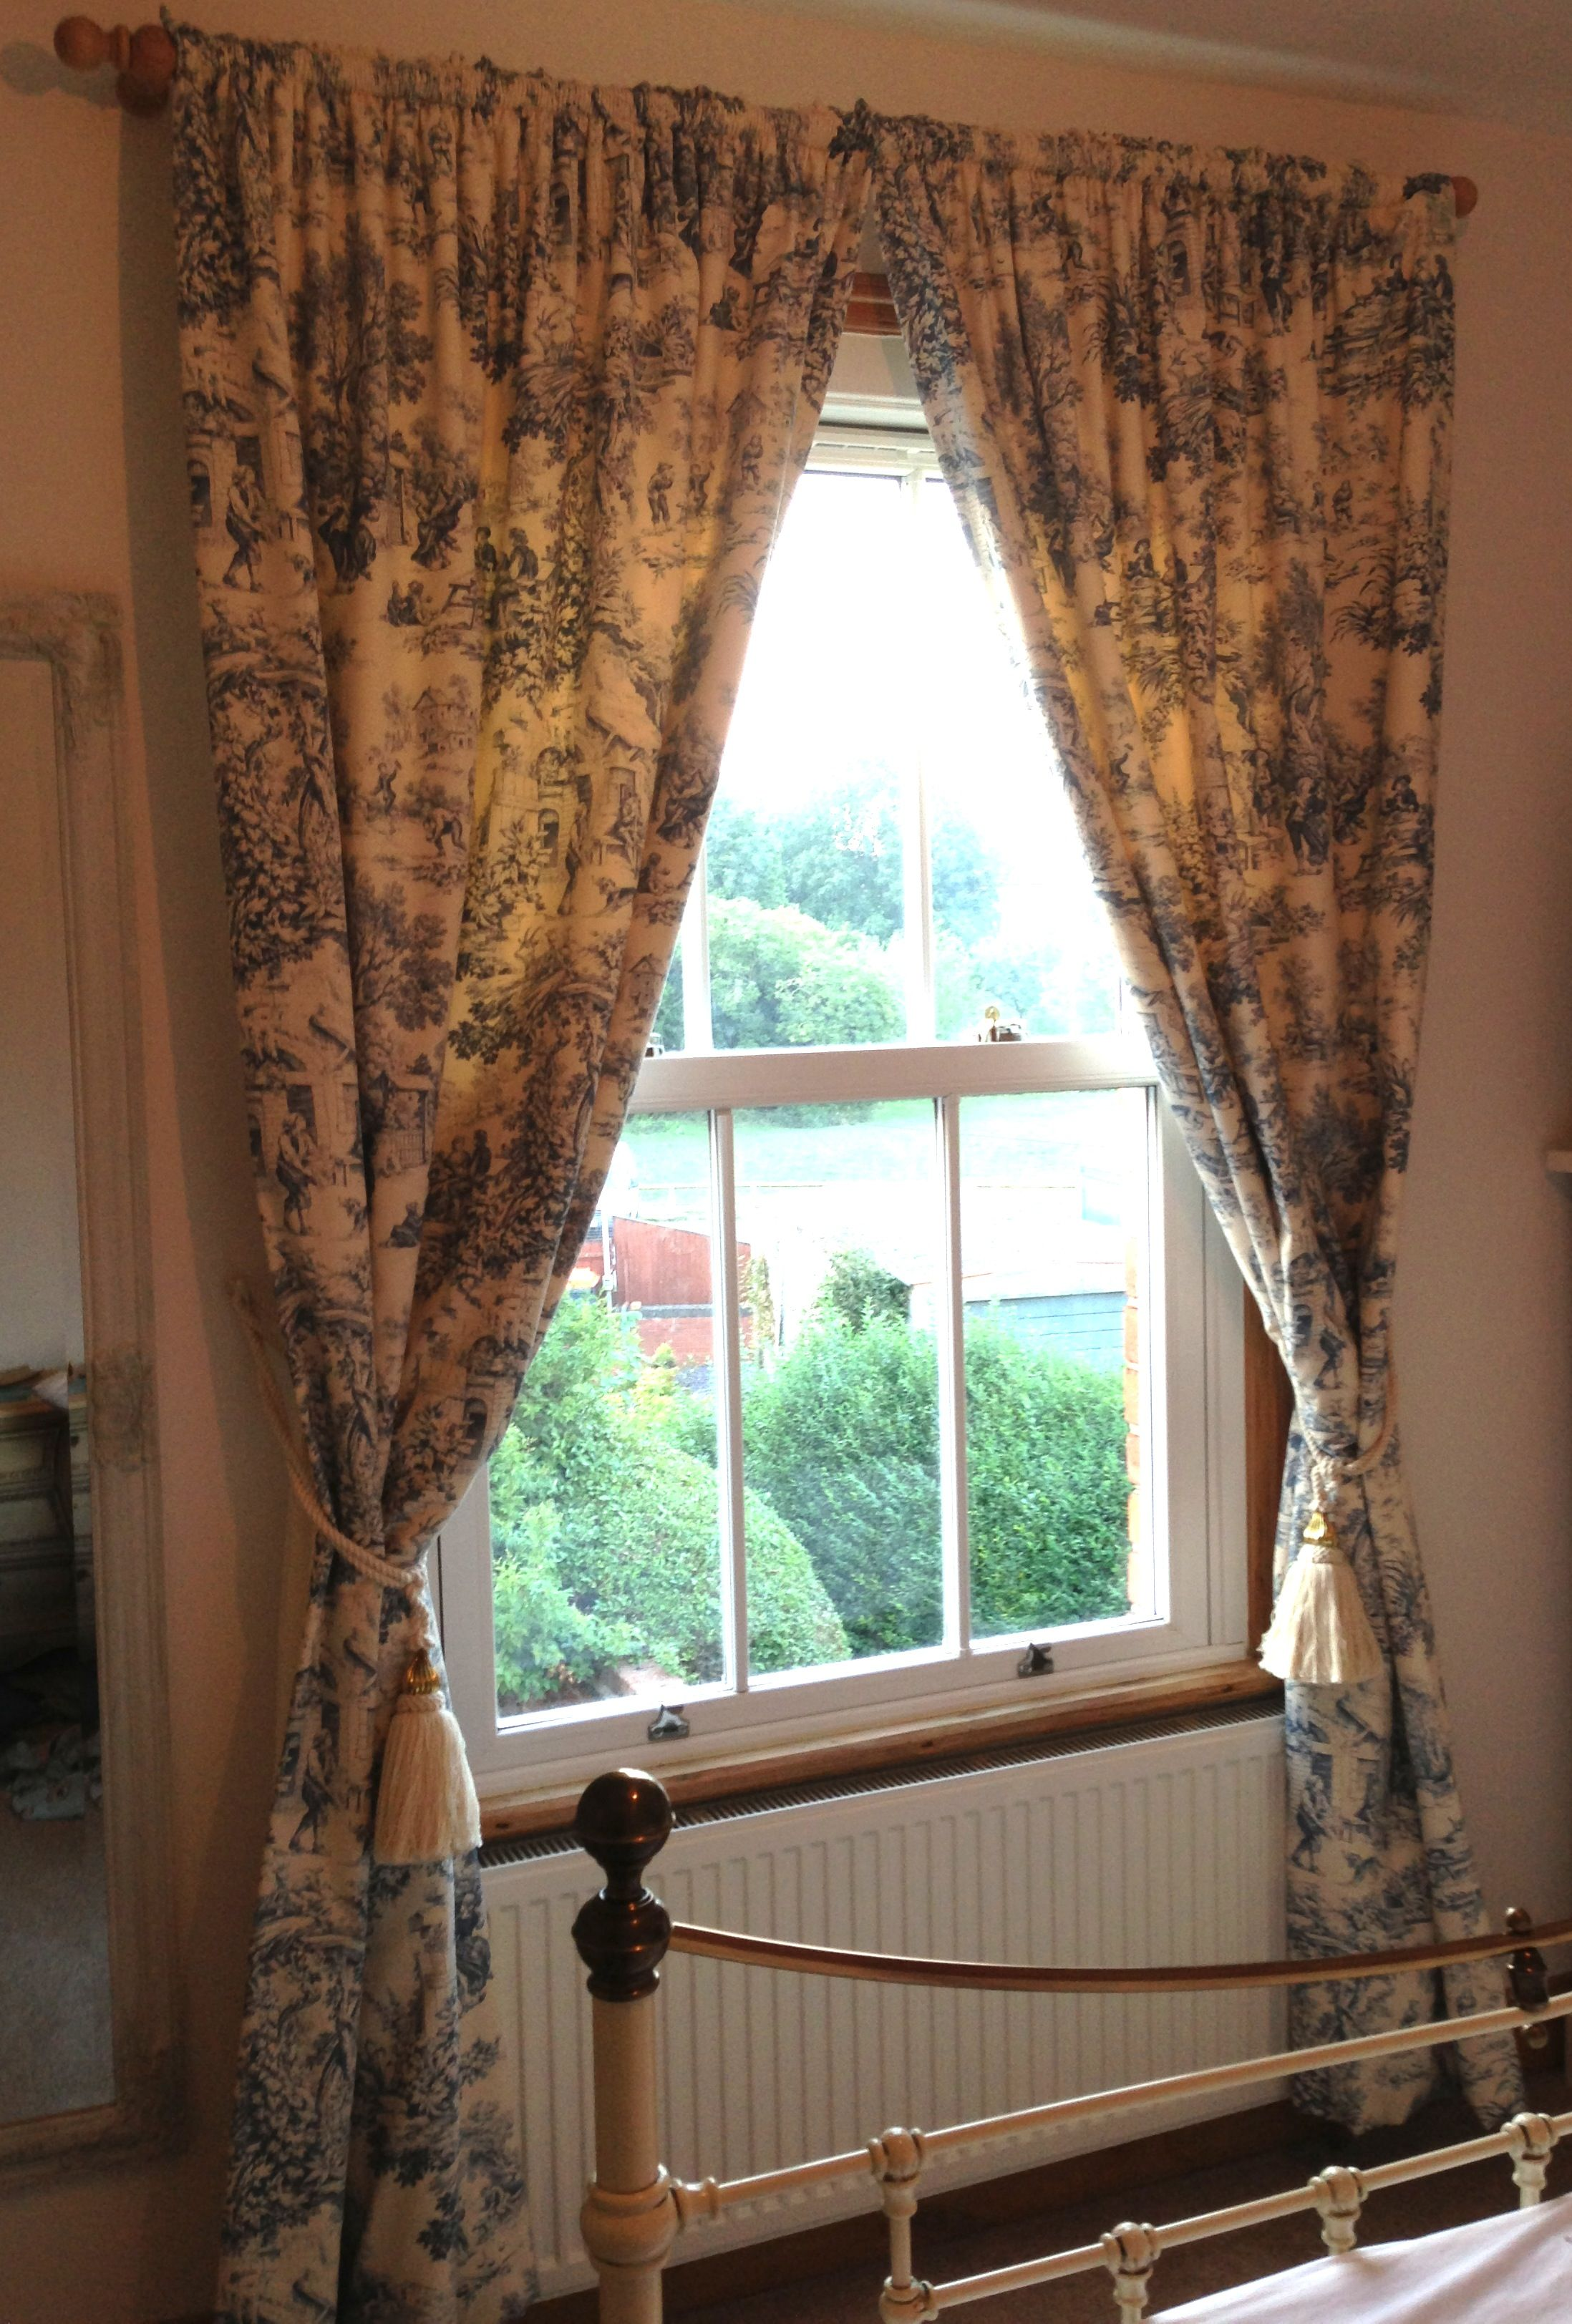 Curtains Made From French Toile Du Jouy Cotton Curtain Fabric From